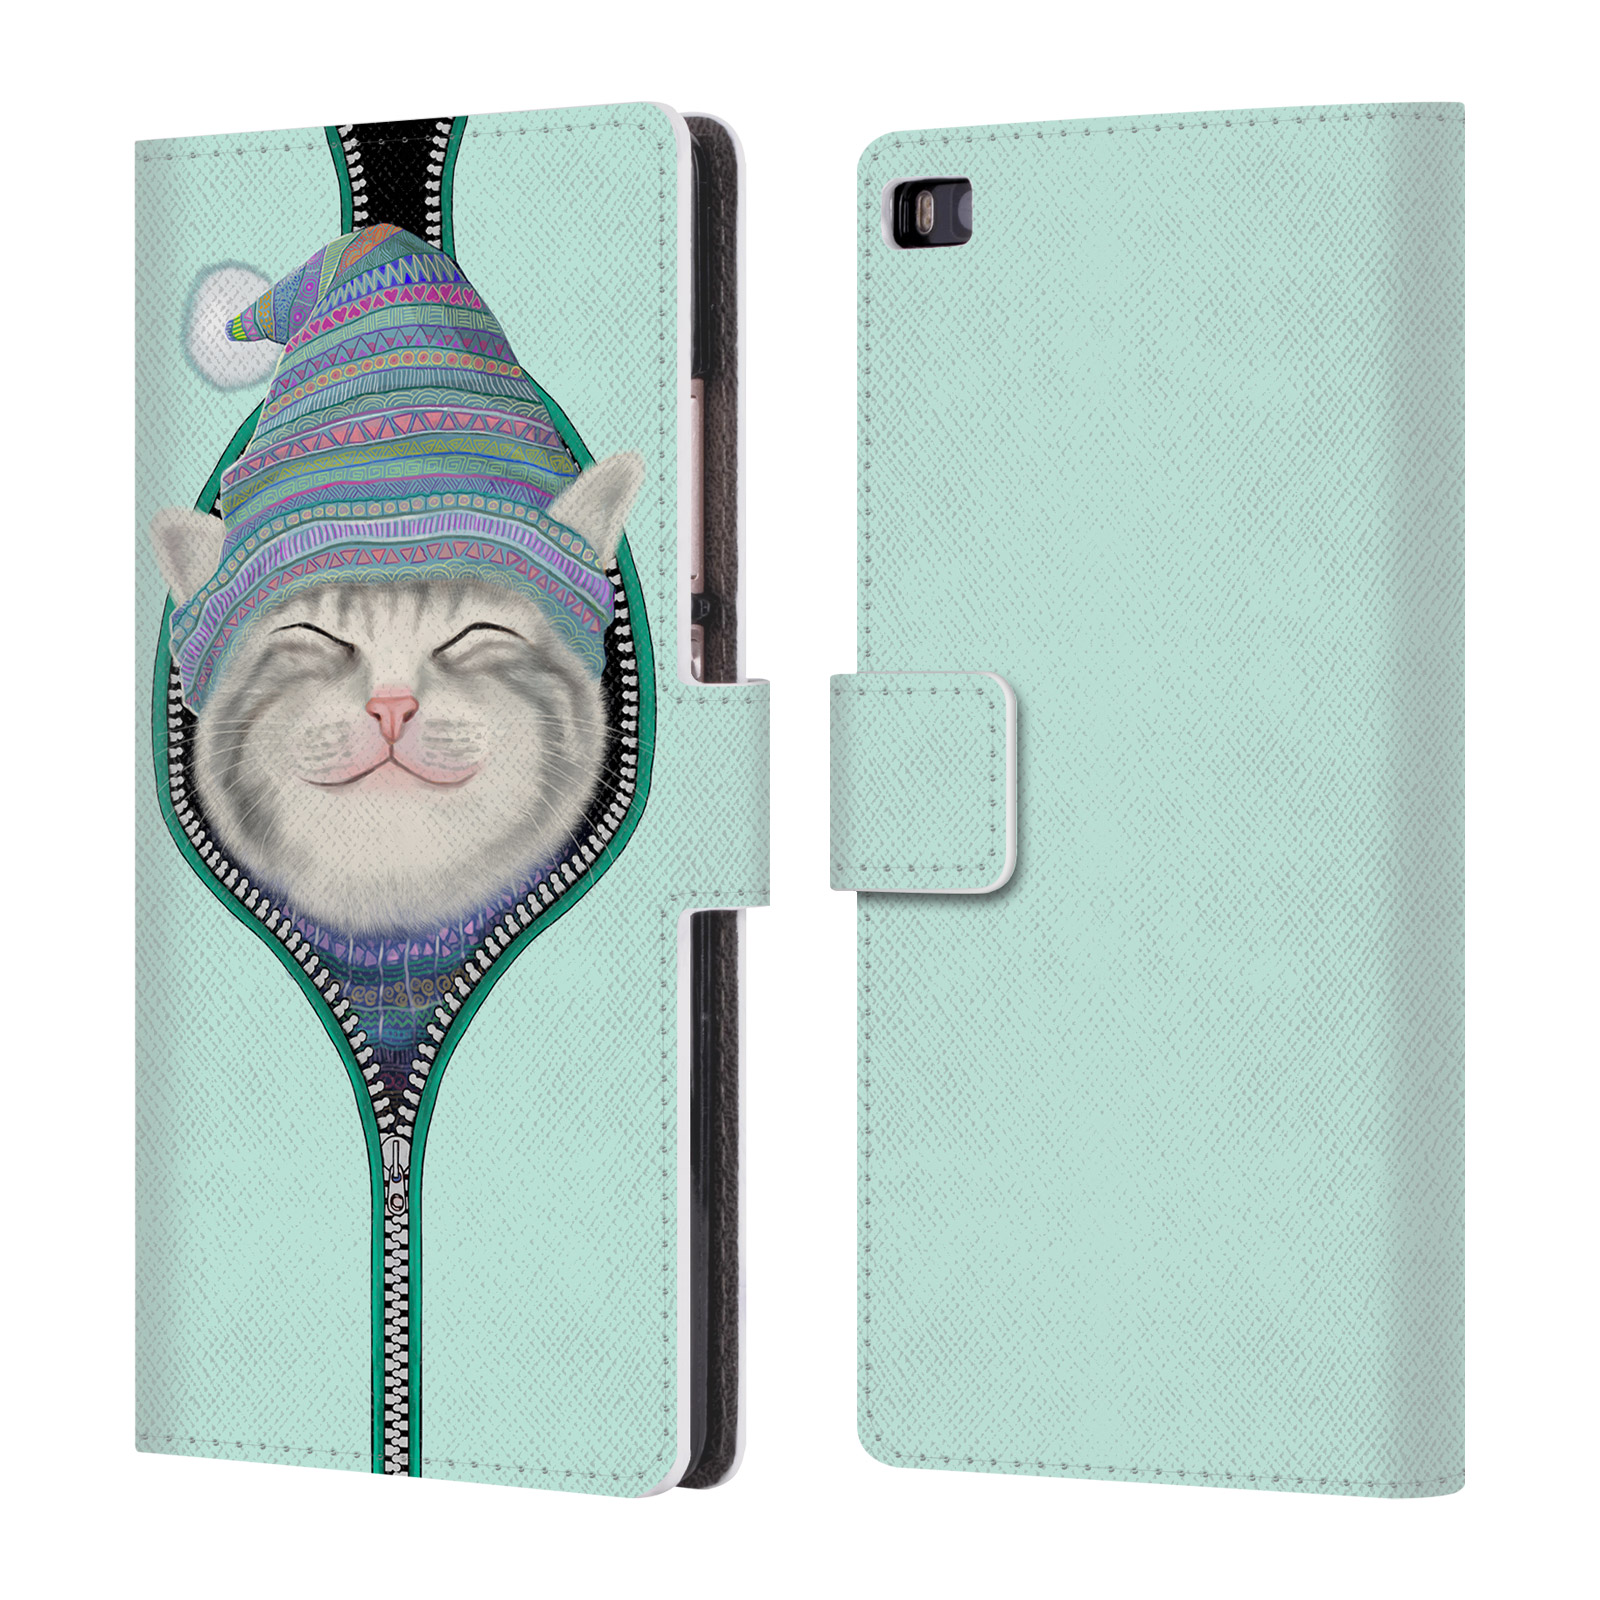 OFFICIAL-TUMMEOW-CATS-2-LEATHER-BOOK-WALLET-CASE-COVER-FOR-HUAWEI-PHONES